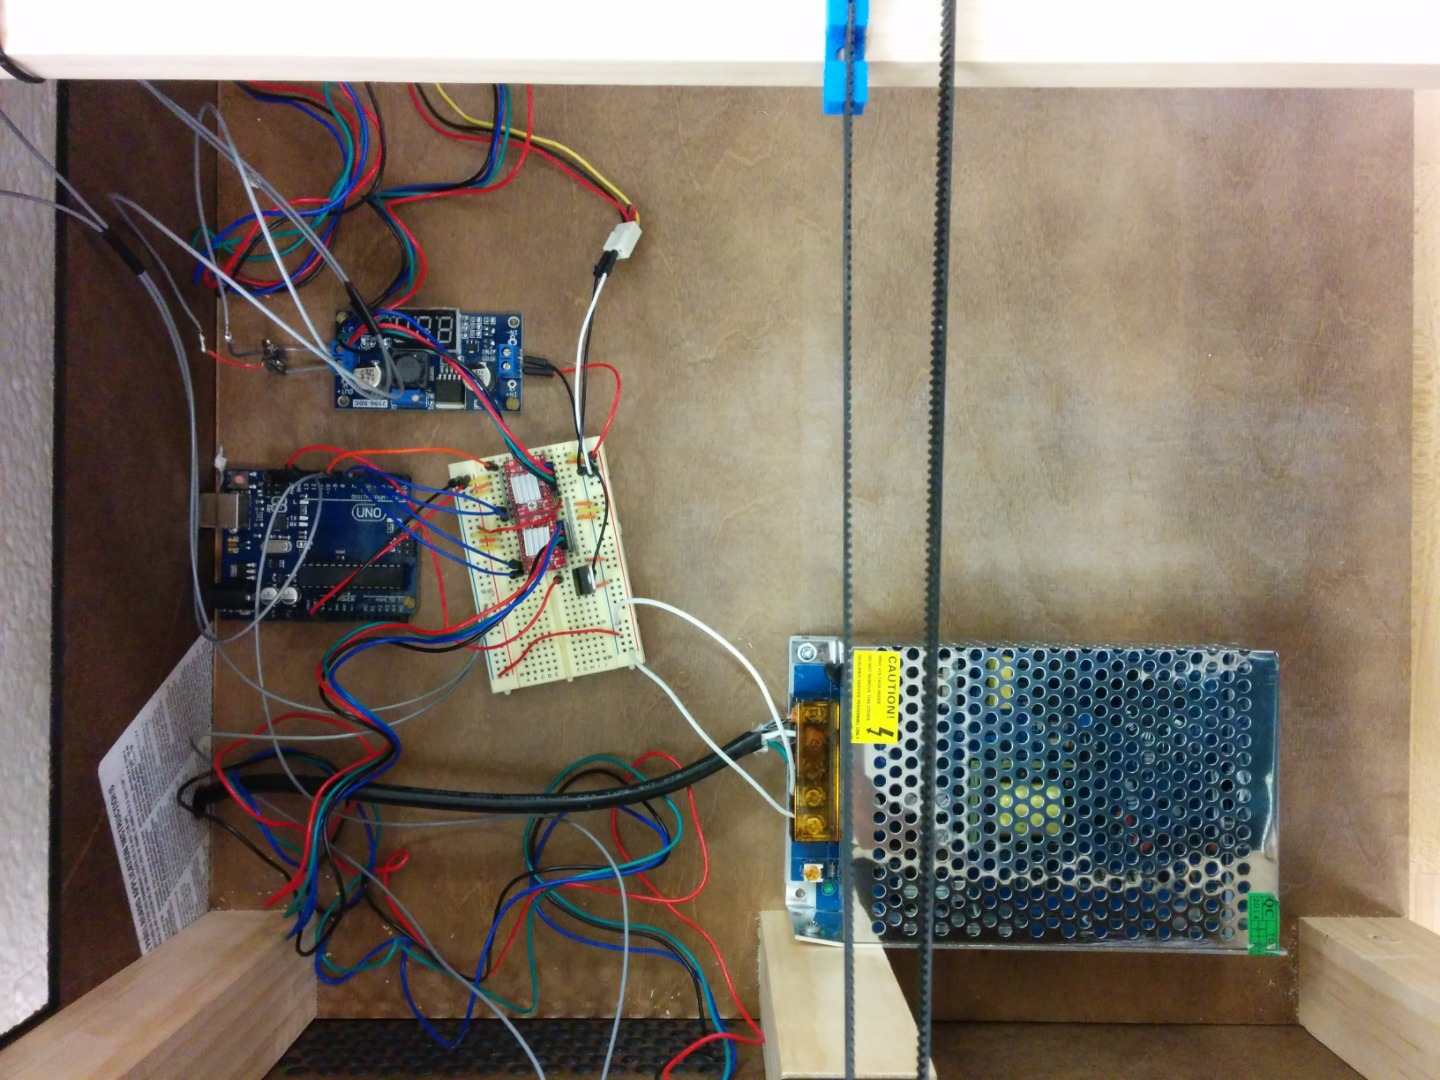 Picture of Testing and Installing Electronics